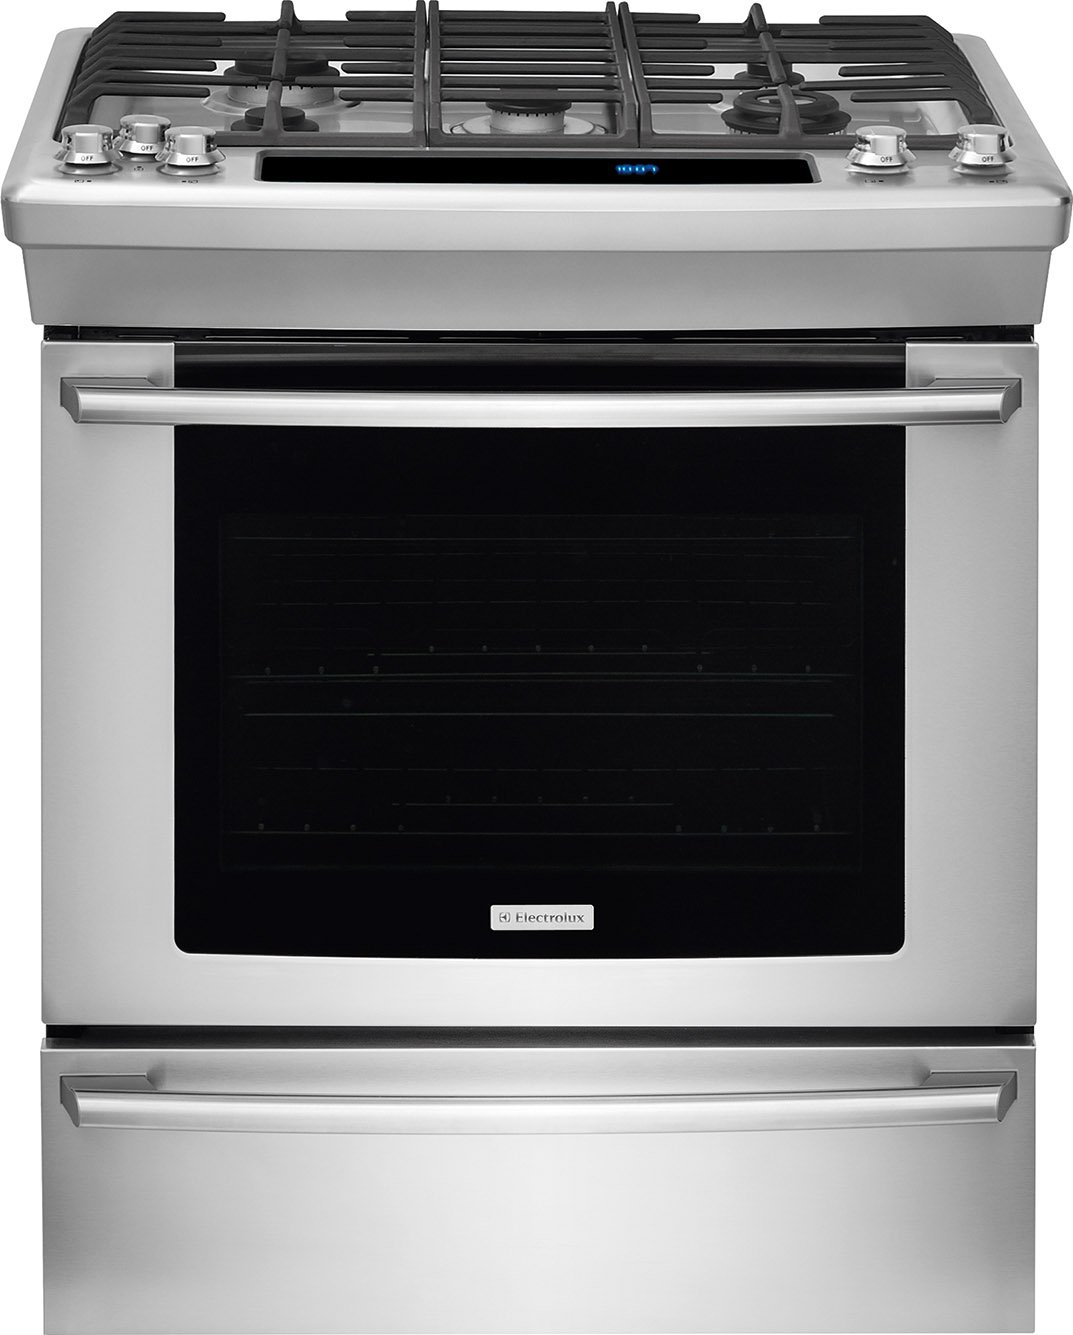 Electrolux EW30GS80RSWave-Touch 30'' Stainless Steel Gas Slide-In Sealed Burner Range - Convection